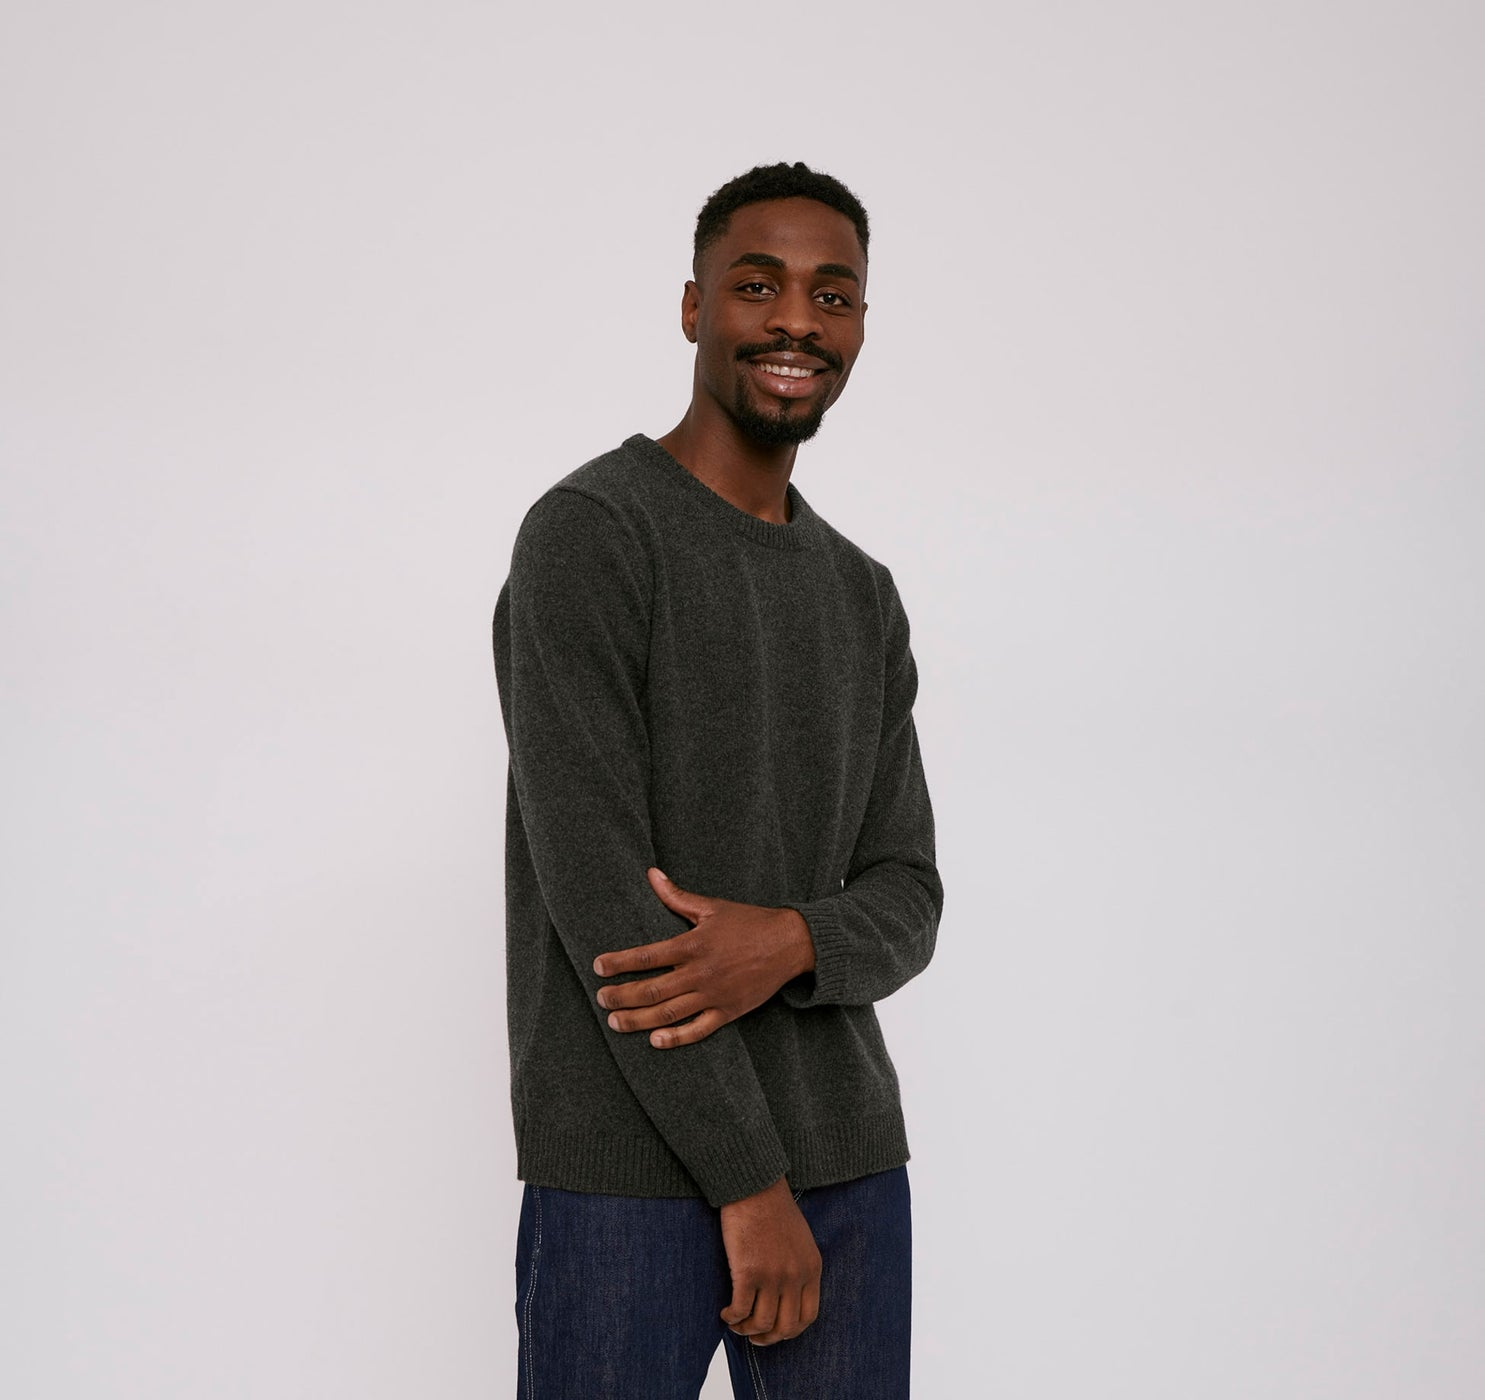 affordable clothes,sustainable clothing brands